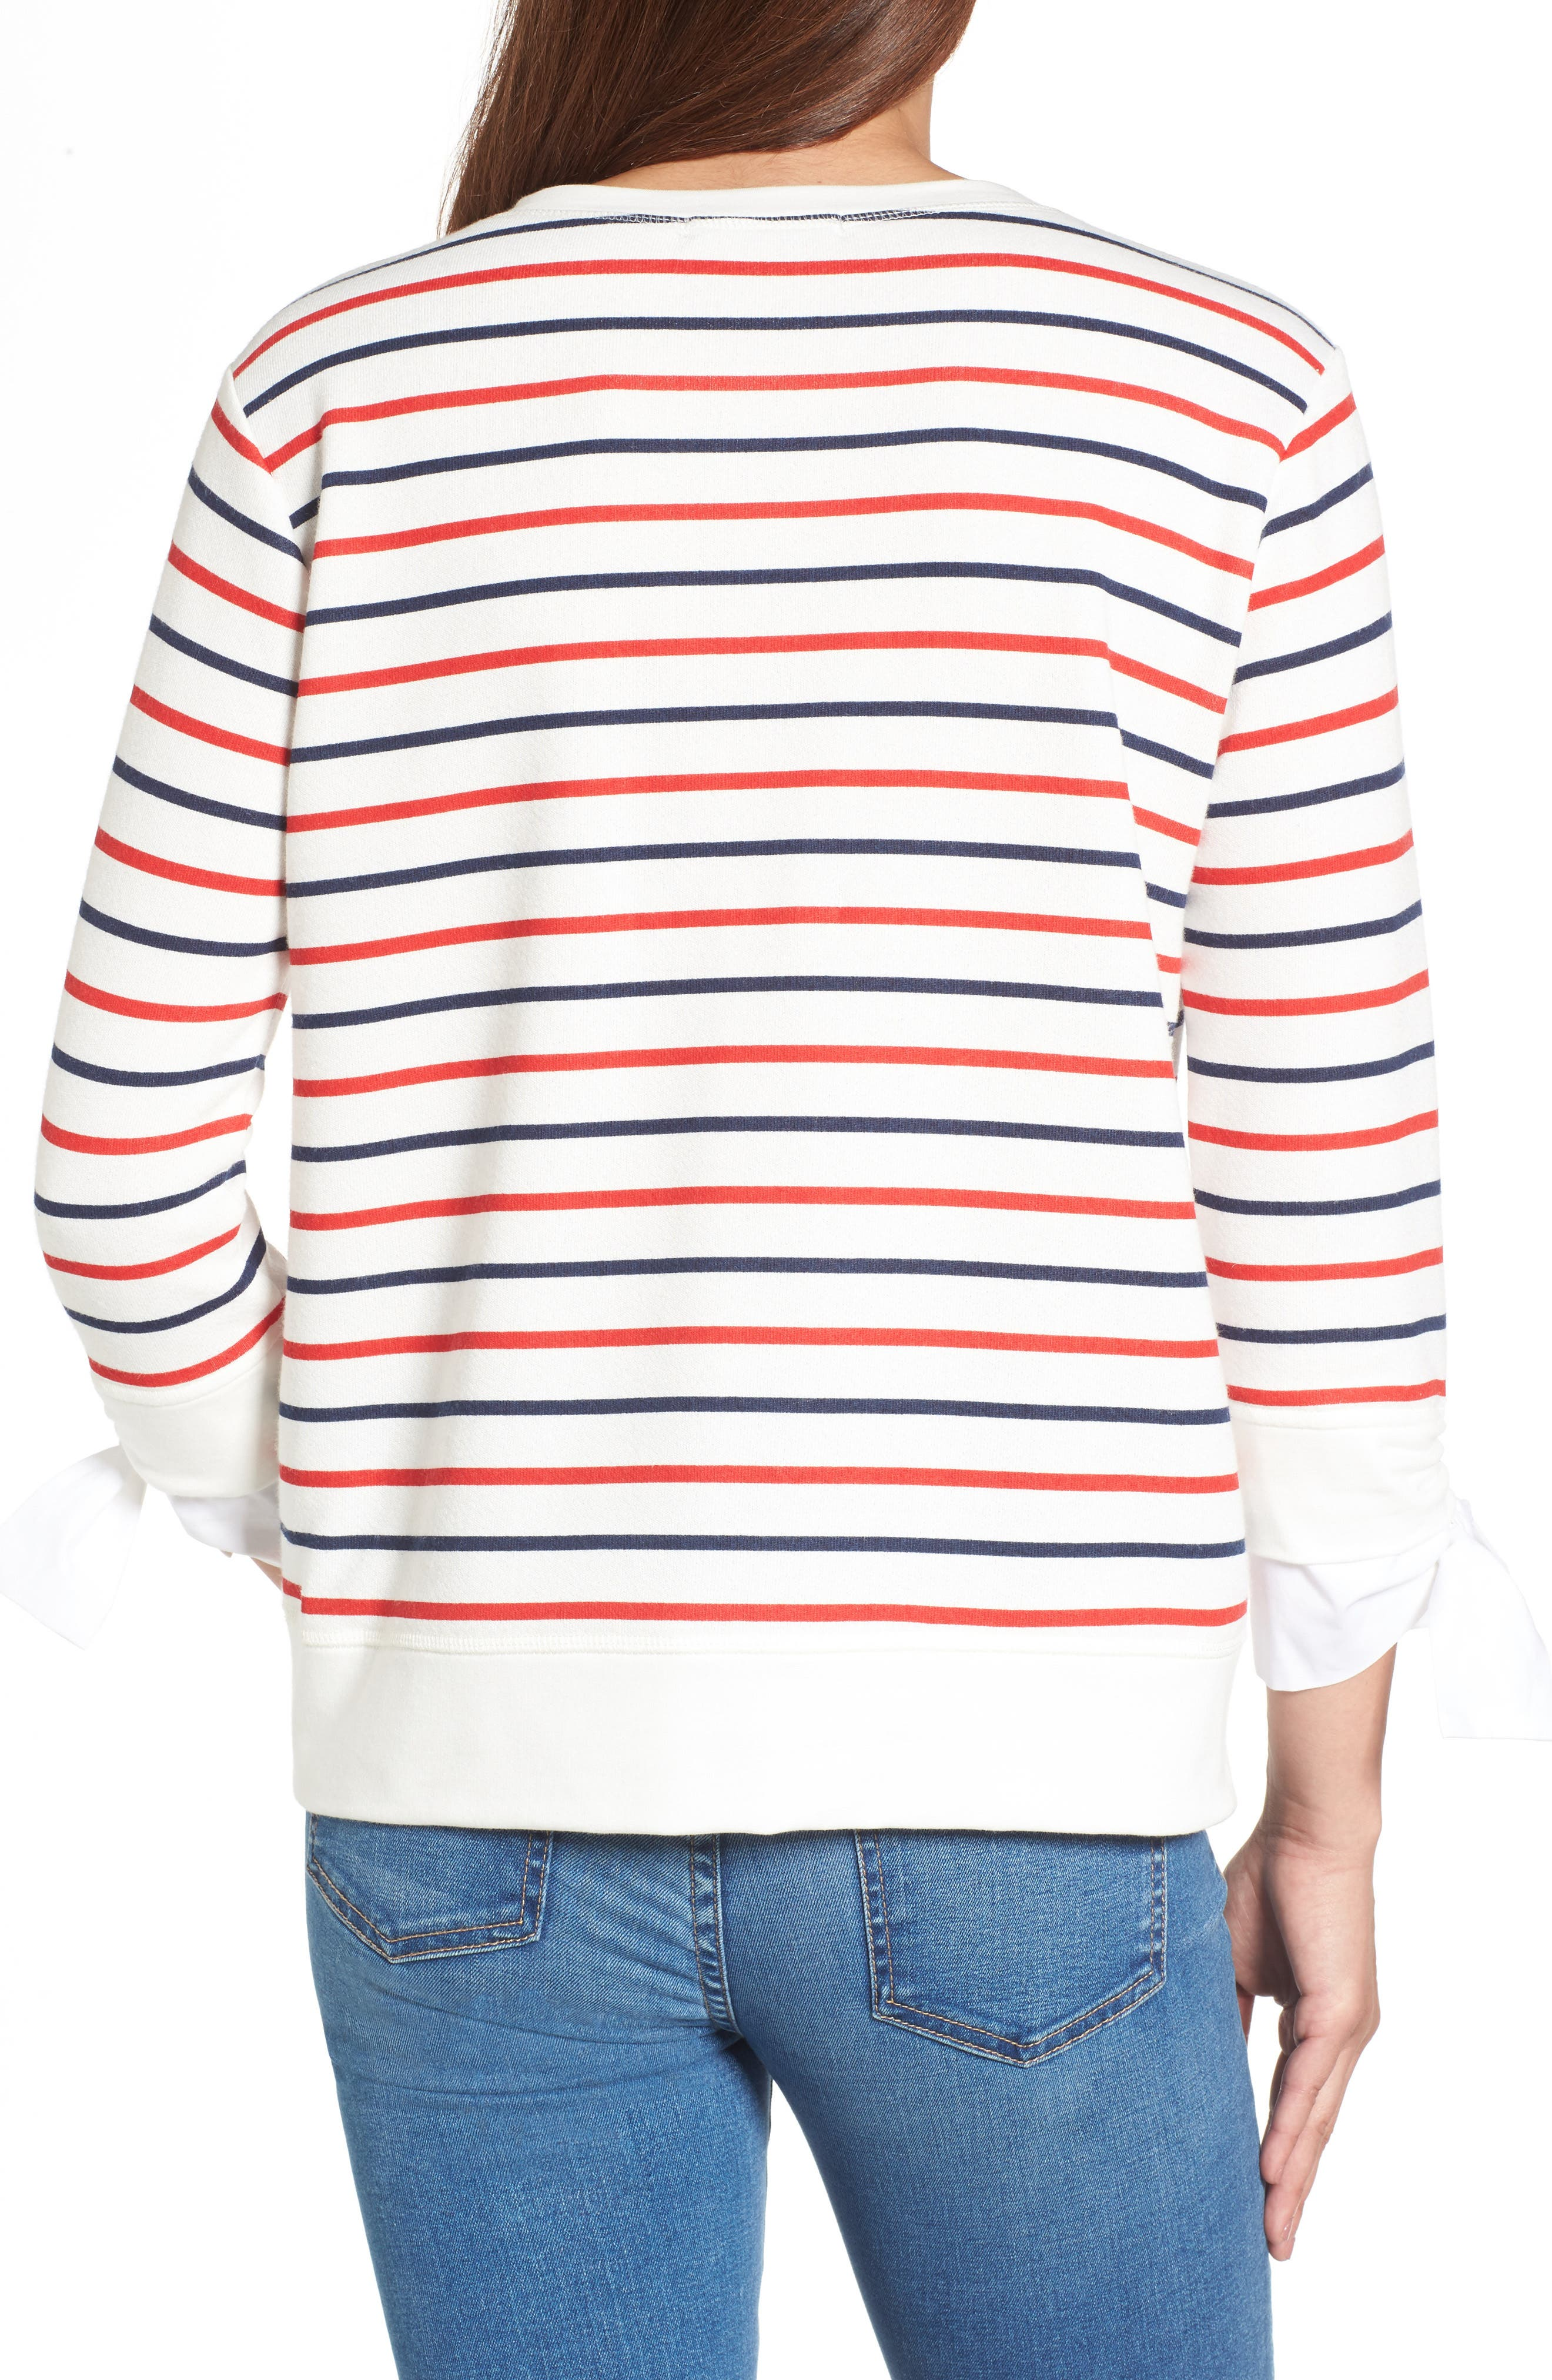 Tie Sleeve Sweatshirt,                             Alternate thumbnail 2, color,                             419